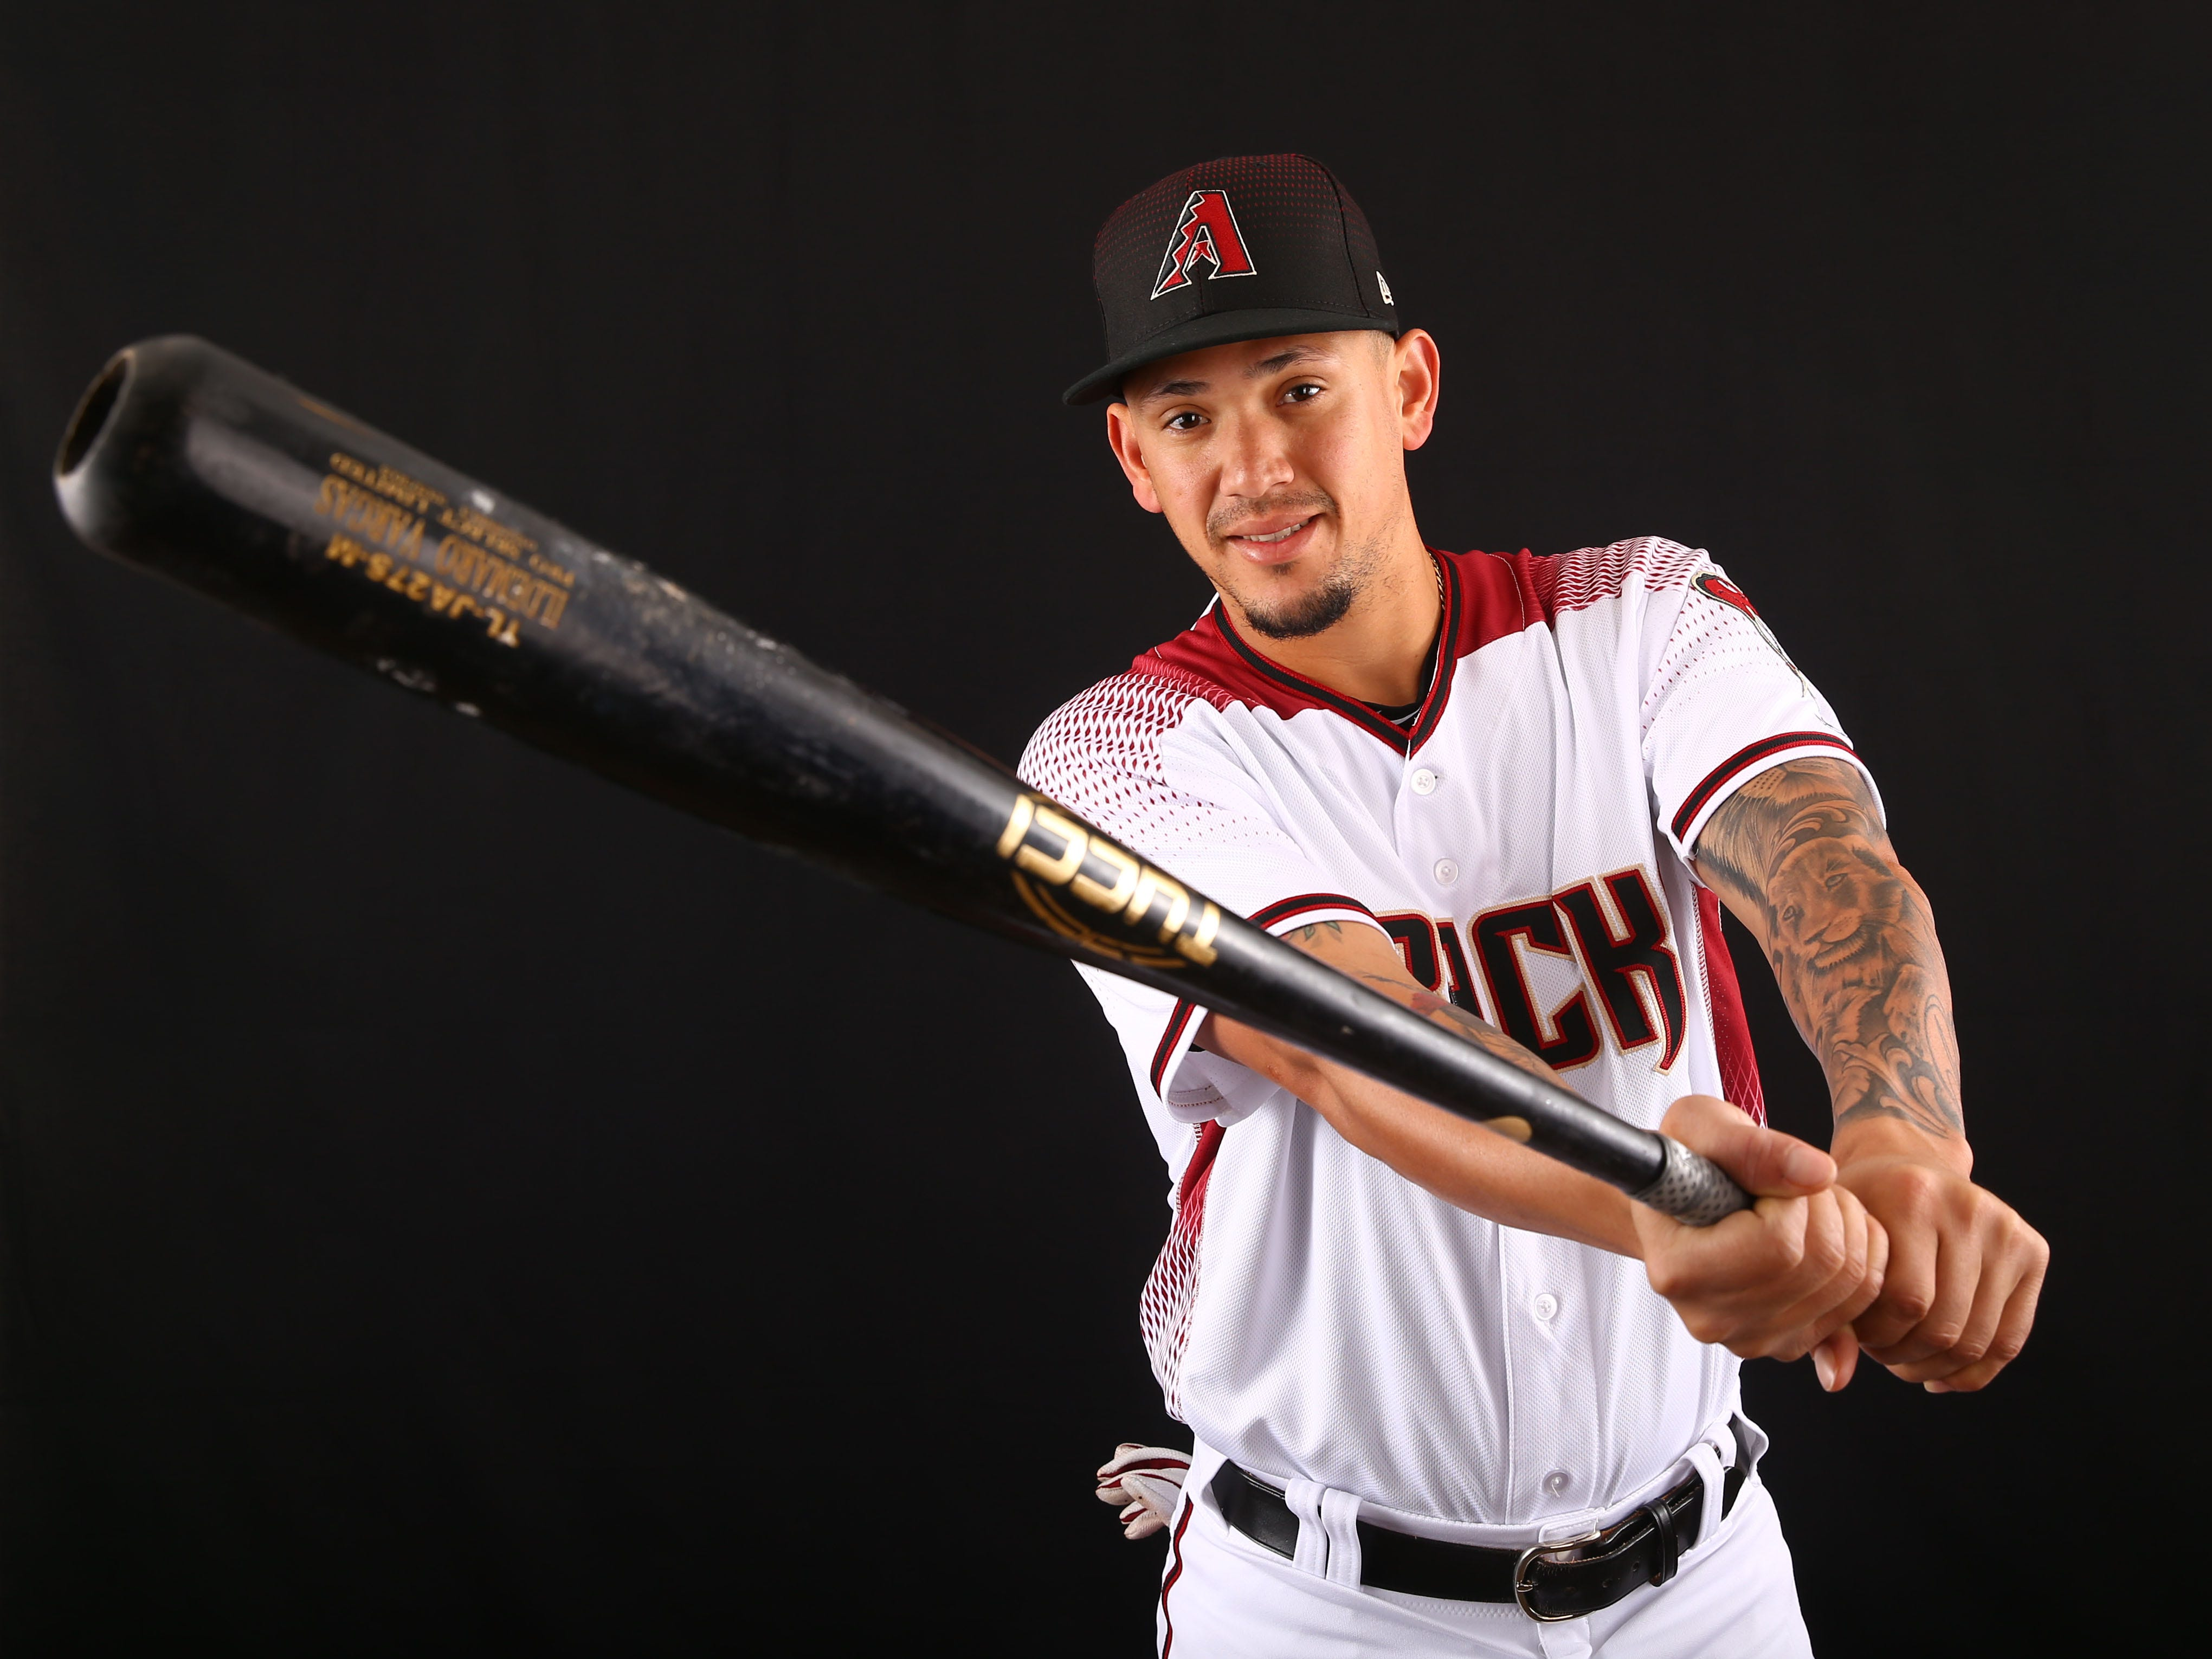 Ildemaro Vargas of the Arizona Diamondbacks poses for a photo during the annual Spring Training Photo Day on Feb. 20 at Salt River Fields in Scottsdale, Ariz.